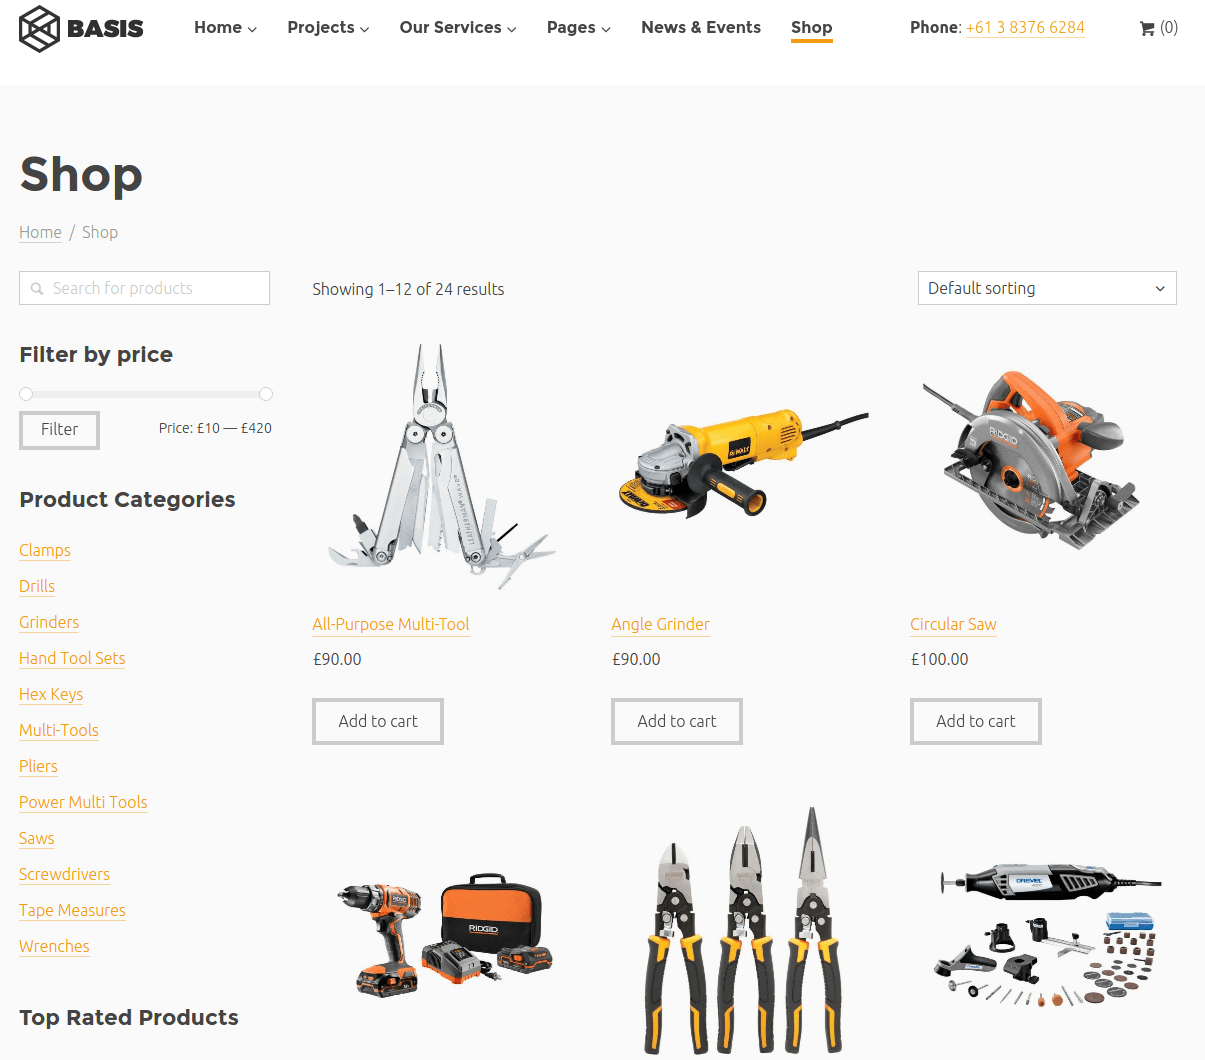 Shop page of Basis